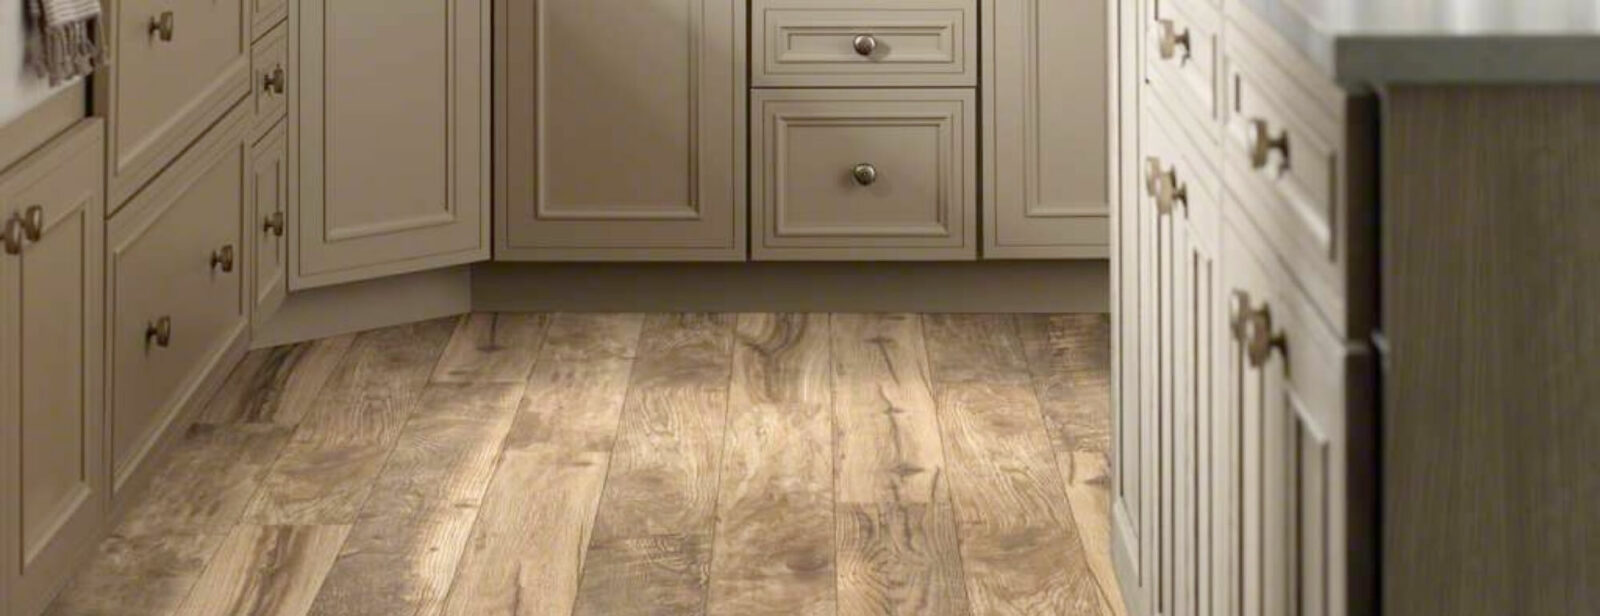 laminate flooring | Direct Carpet Unlimited